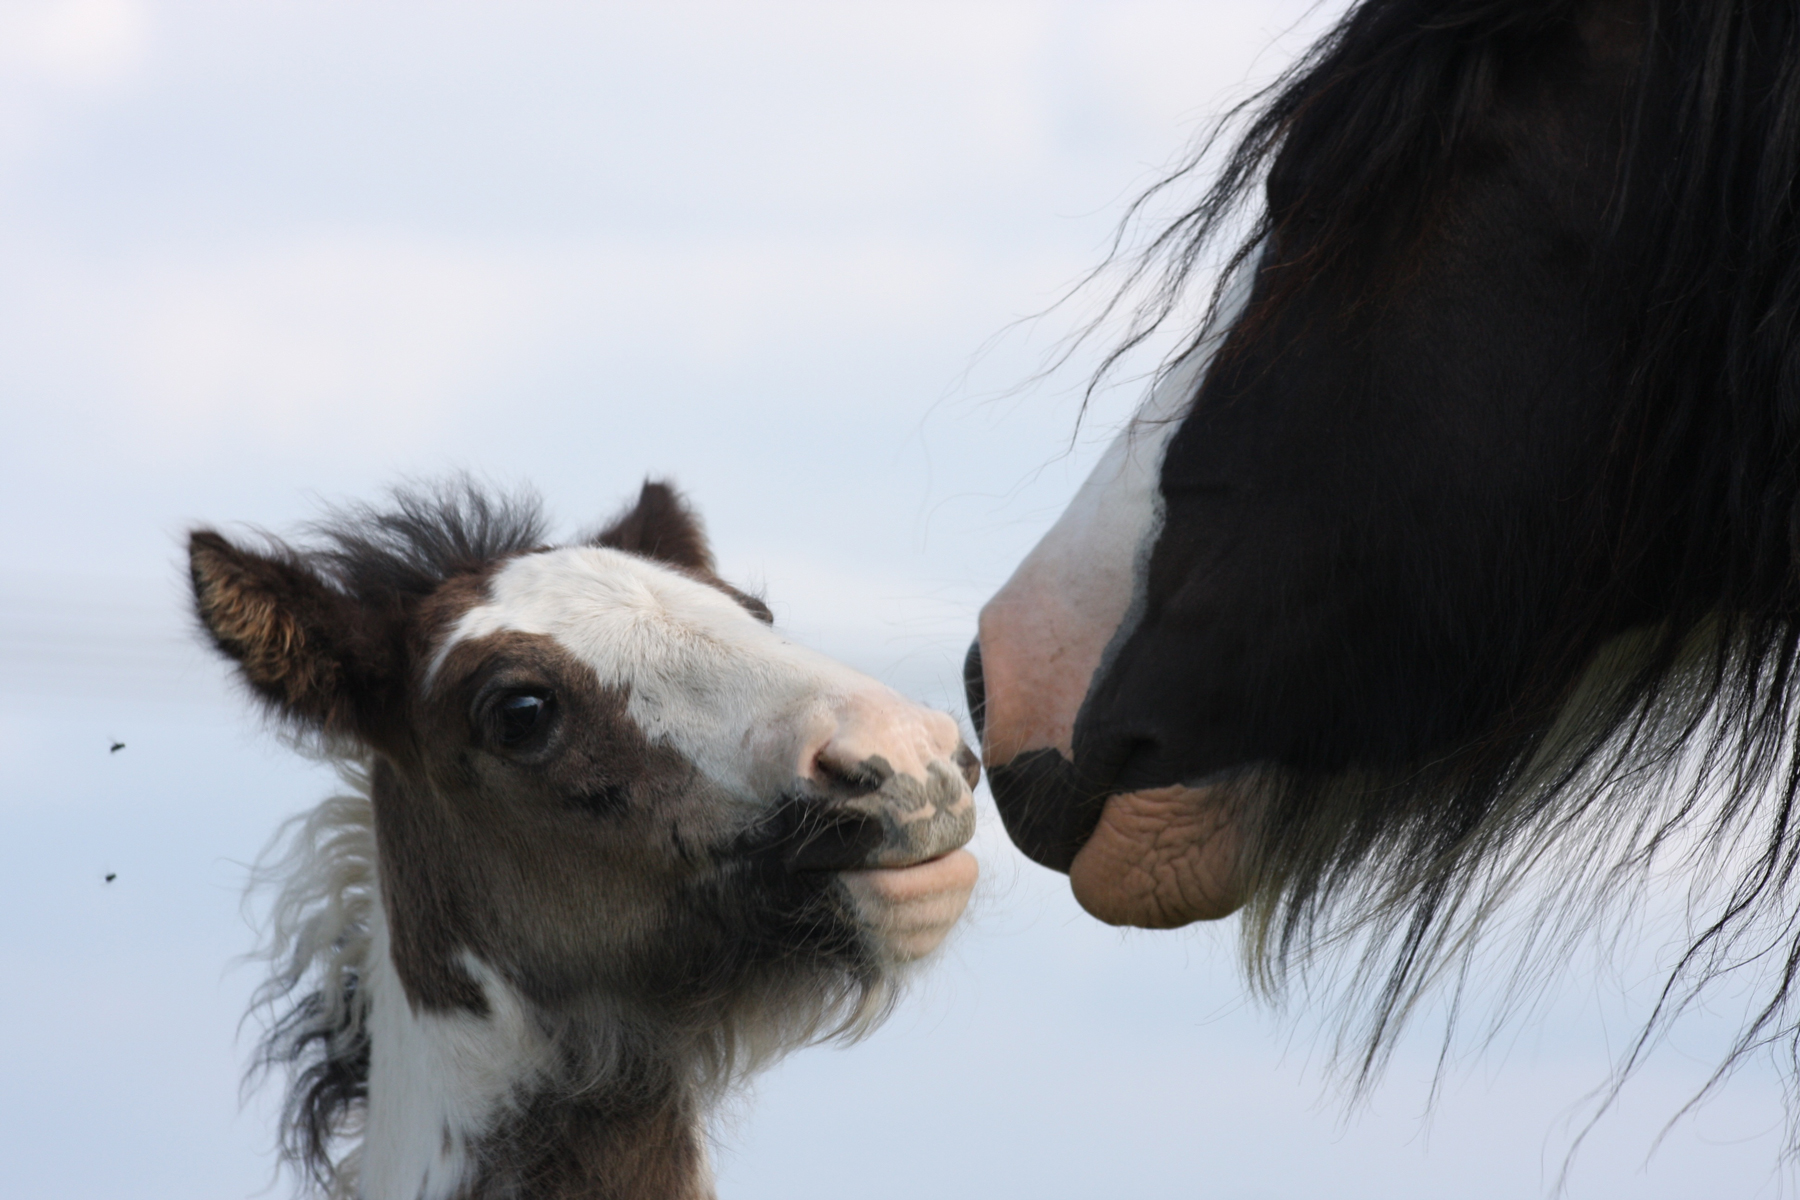 A mare and foal with their heads close facing each other